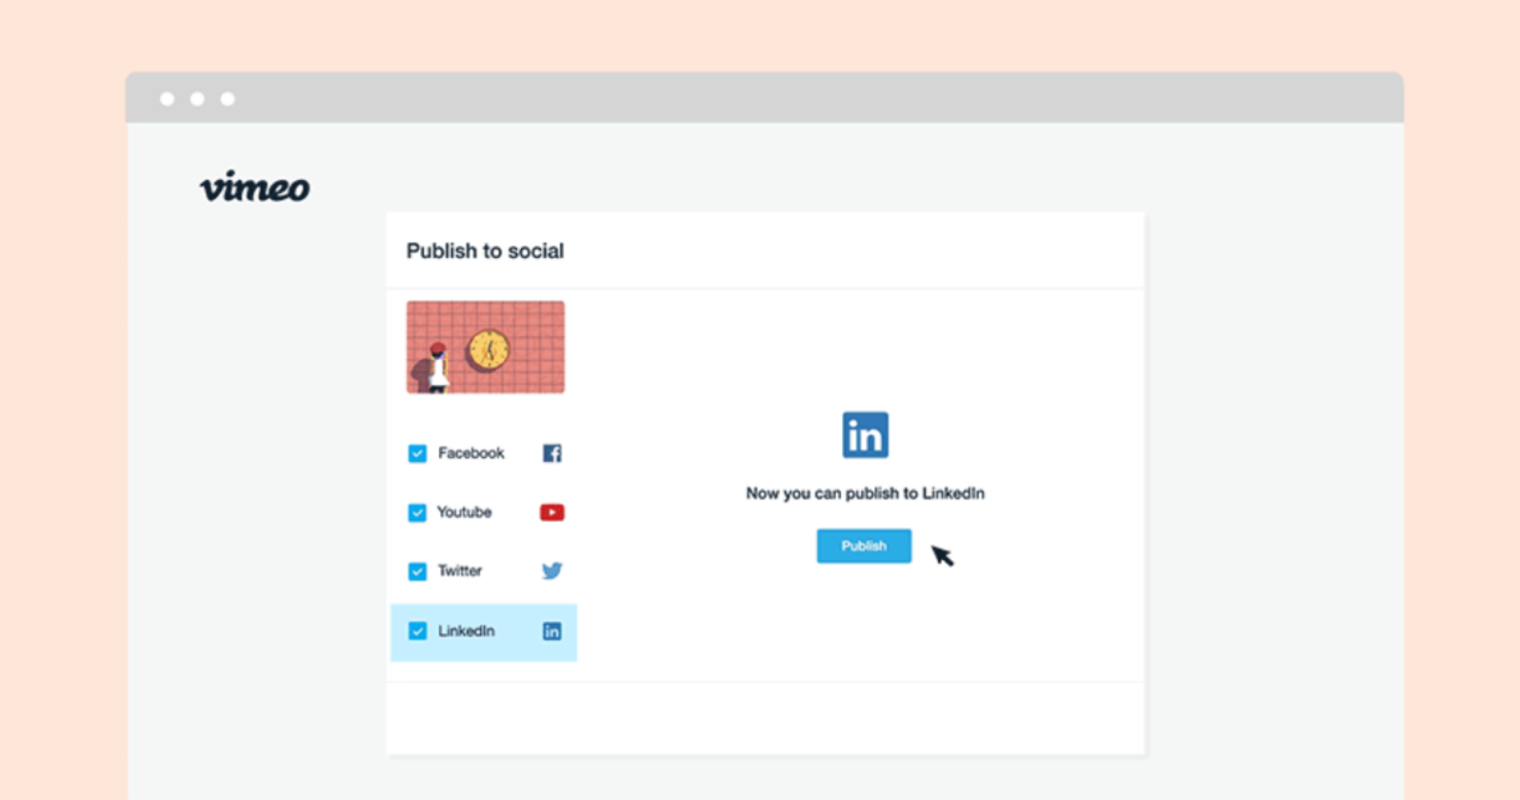 LinkedIn Company Pages Can Now Publish Video Content Directly from Vimeo